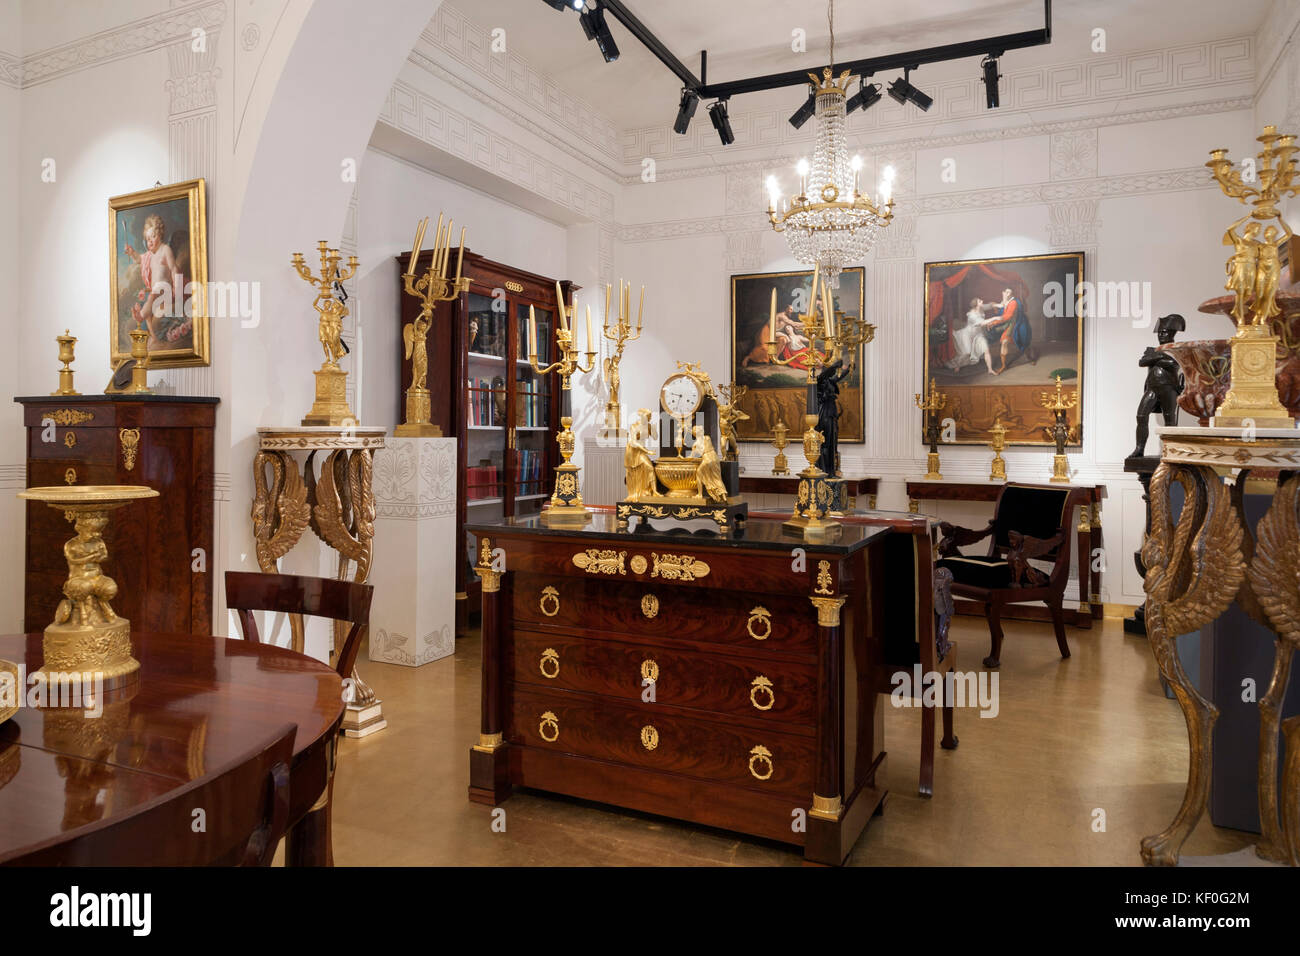 antiquit tengesch ft mit empire stil m bel stockfoto bild 164125772 alamy. Black Bedroom Furniture Sets. Home Design Ideas